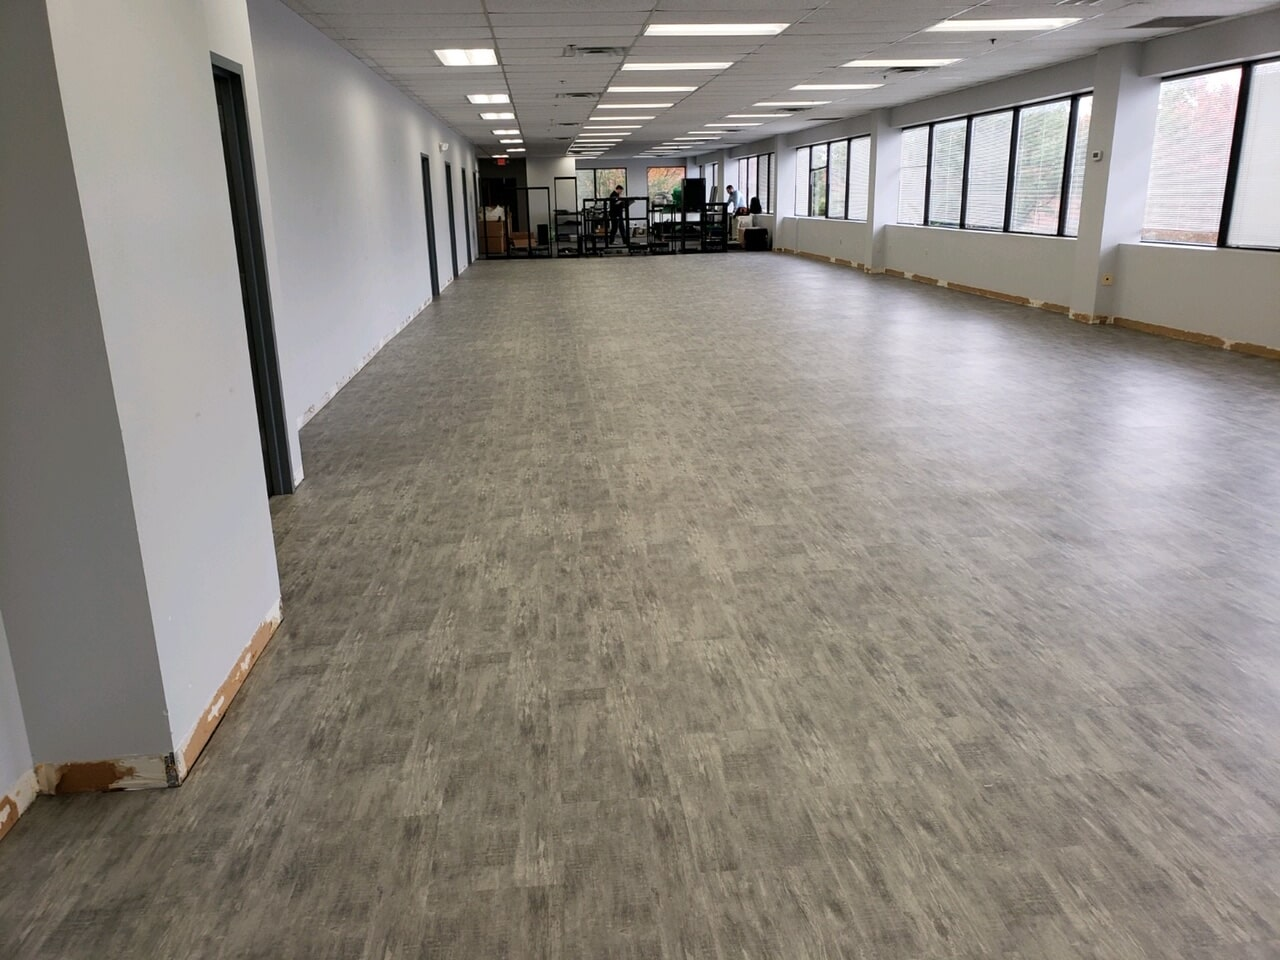 Commercial flooring in Annapolis, MD from Andonian's Carpet Warehouse